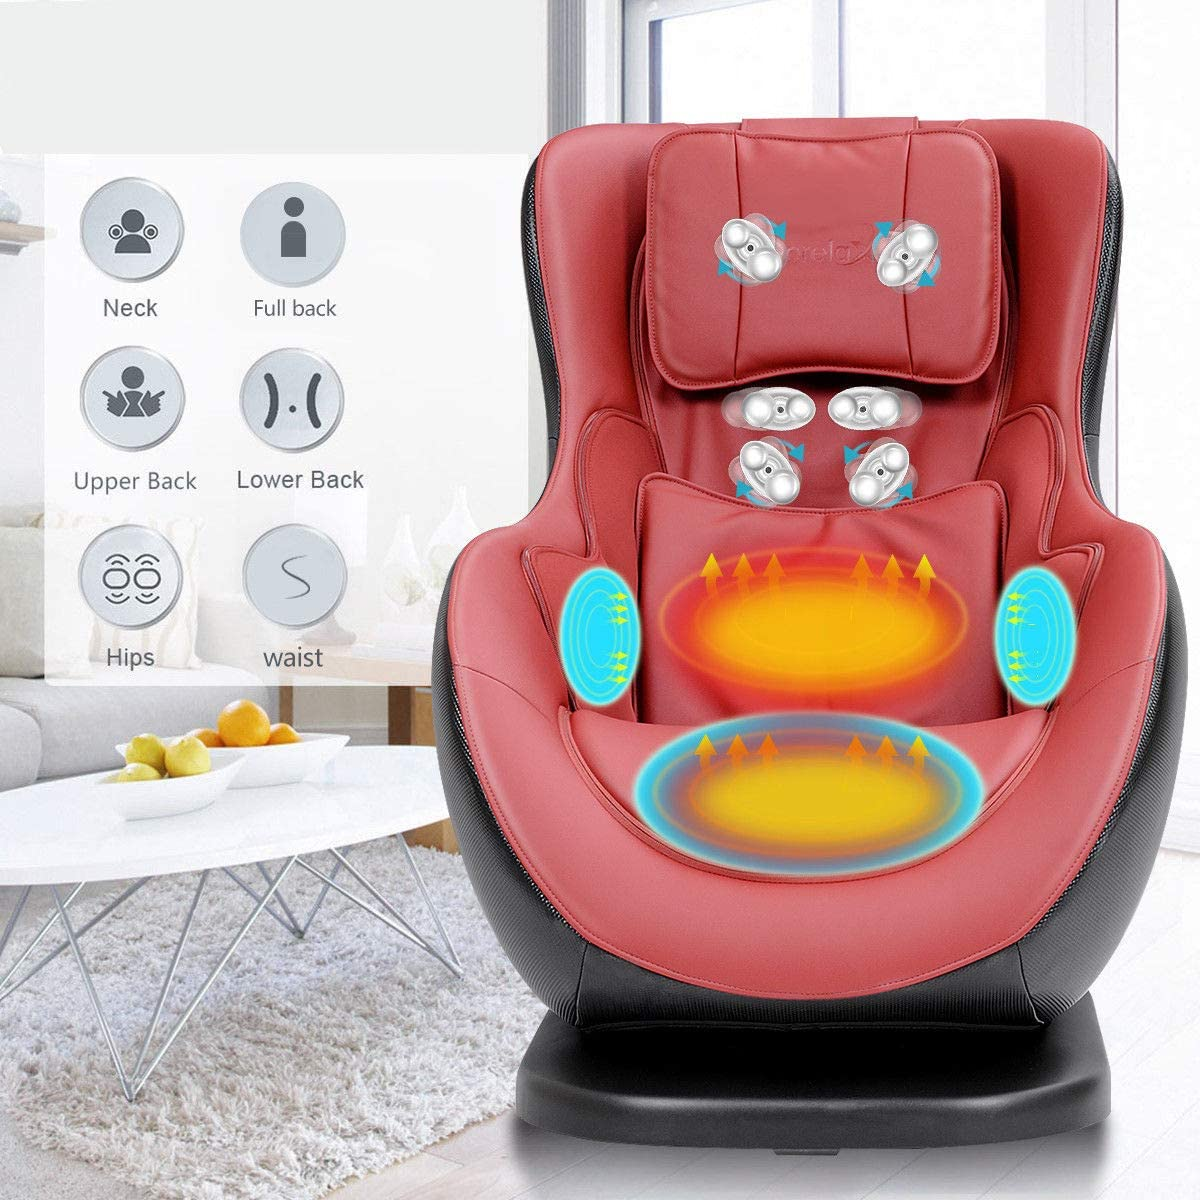 Giantex Leisure Curved Massage Chair Shiatsu Massage with Heating Therapy Video Gaming Chair, with Wireless Bluetooth Speaker and USB Charger for Home.